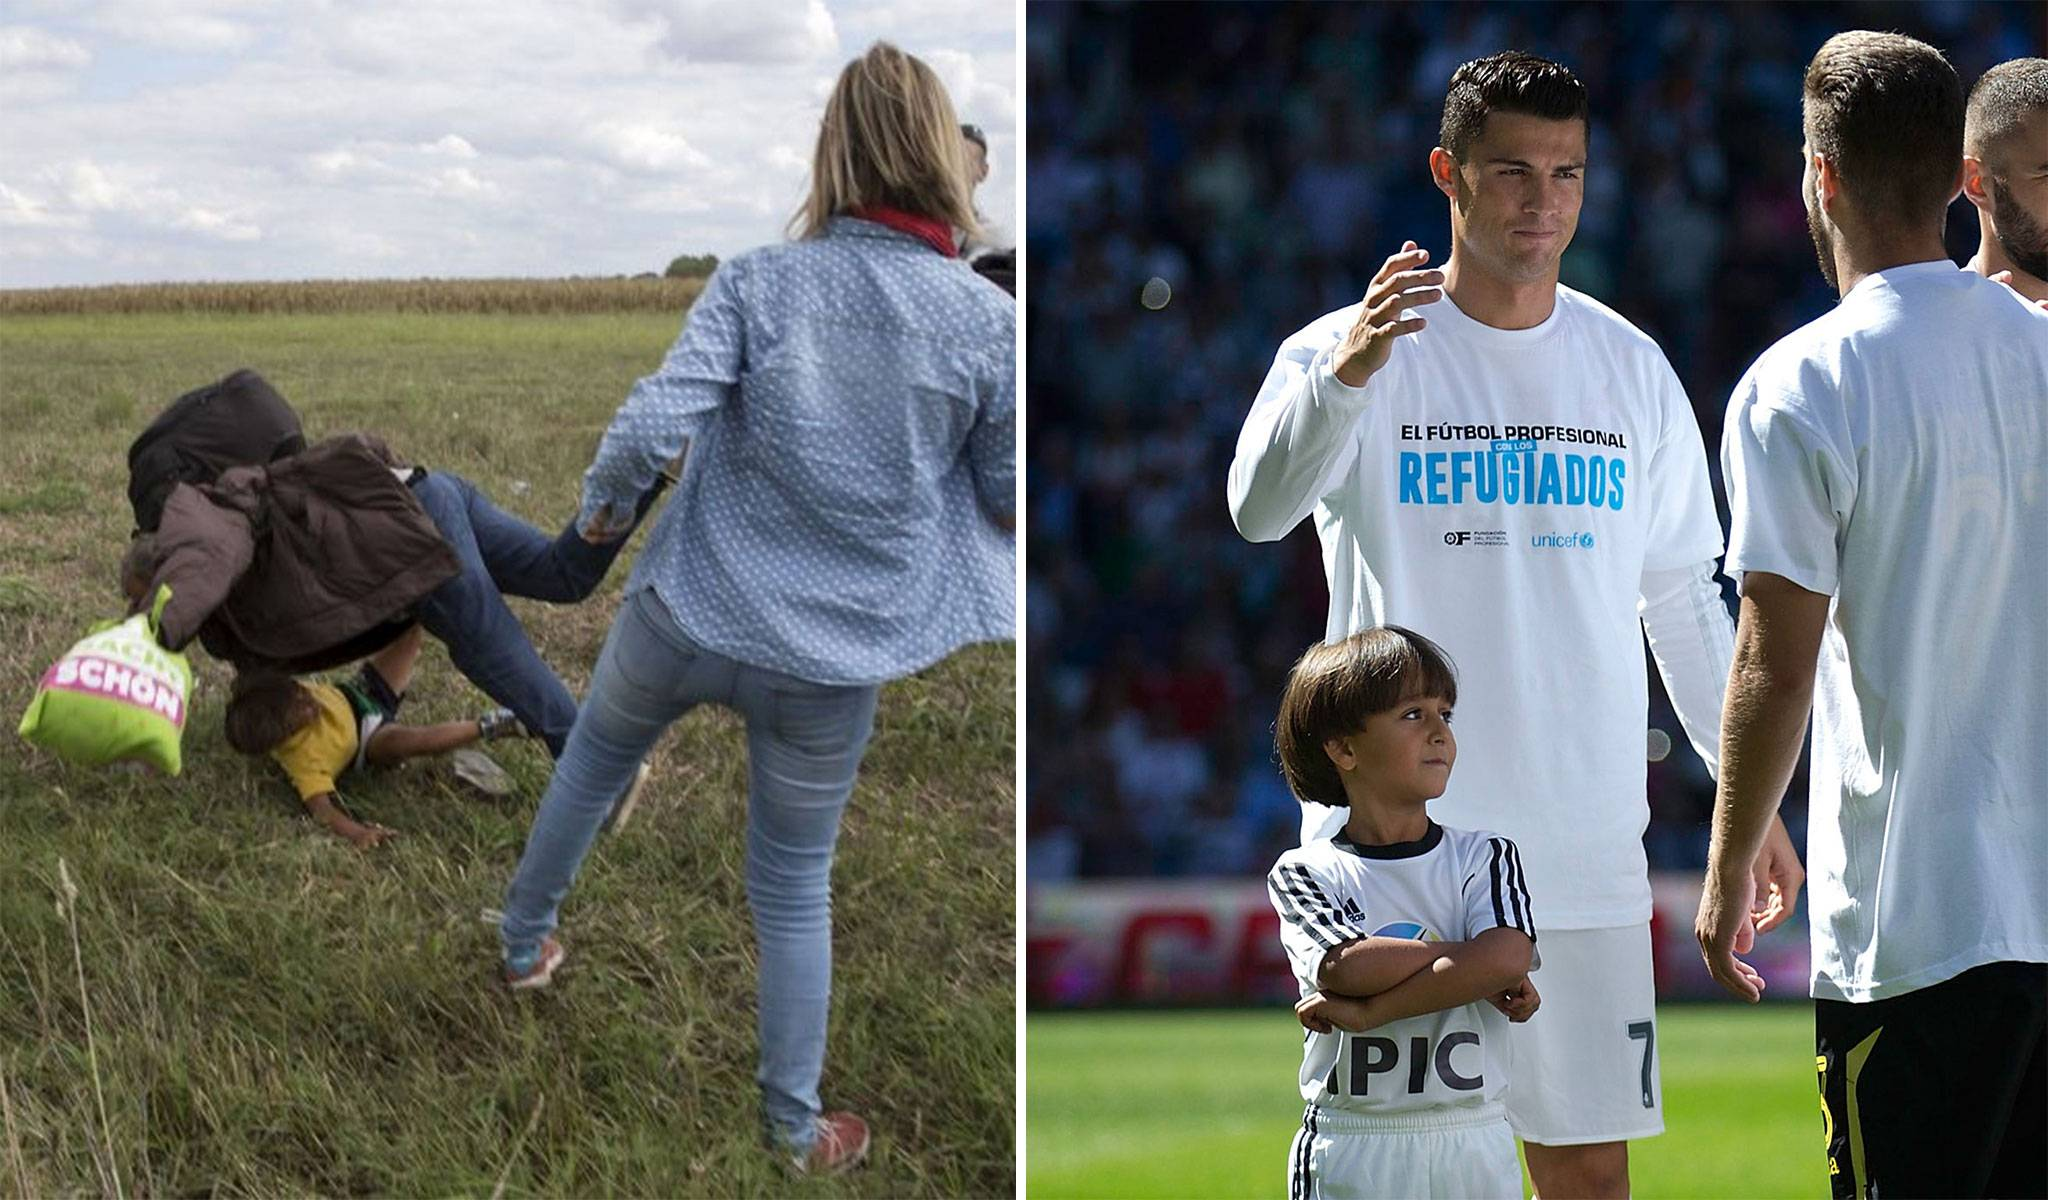 Refugee crisis: Cristiano Ronaldo walks out with Syrian boy tripped over by Hungarian camera operator before Real Madrid match